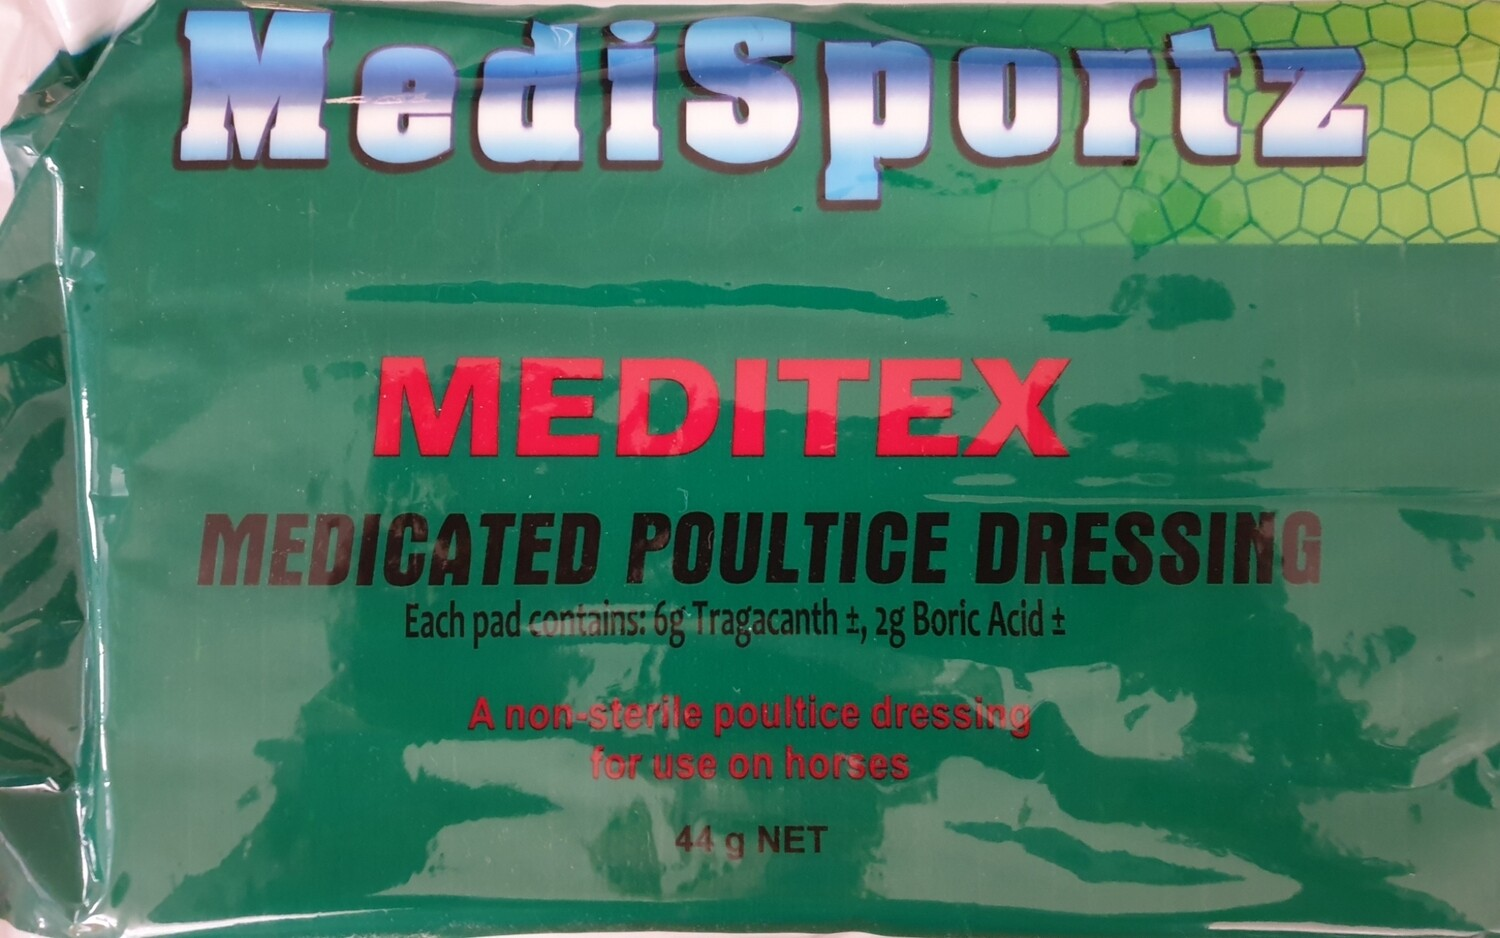 Medicated Hoof Poultices